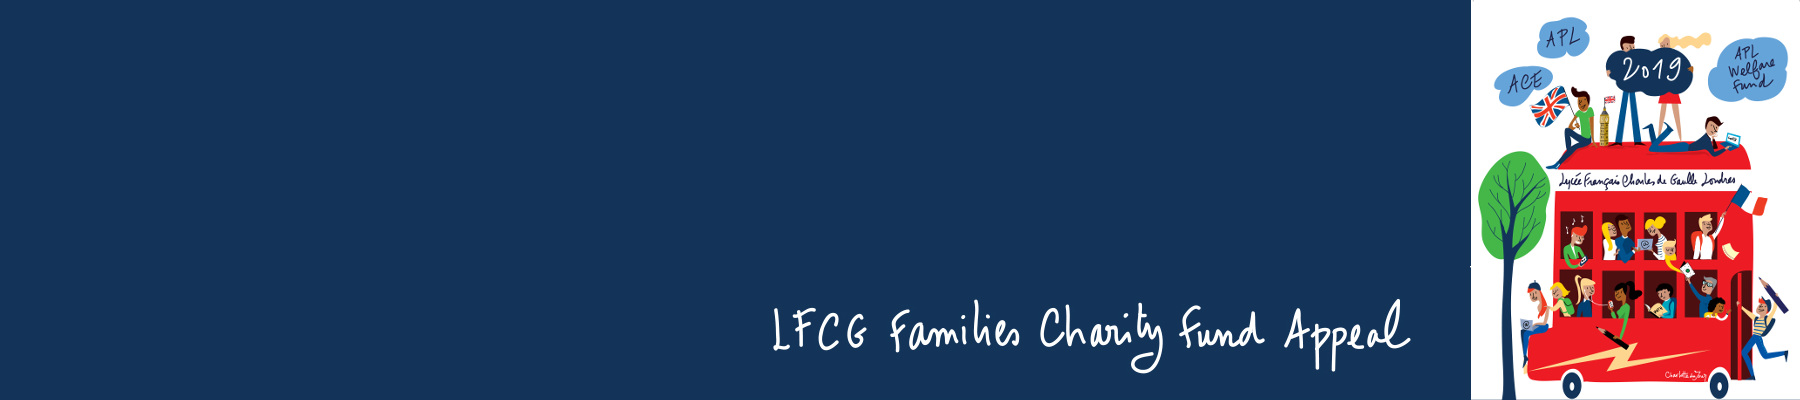 Banner-GALA LFCG Families Funds2019-1800x400